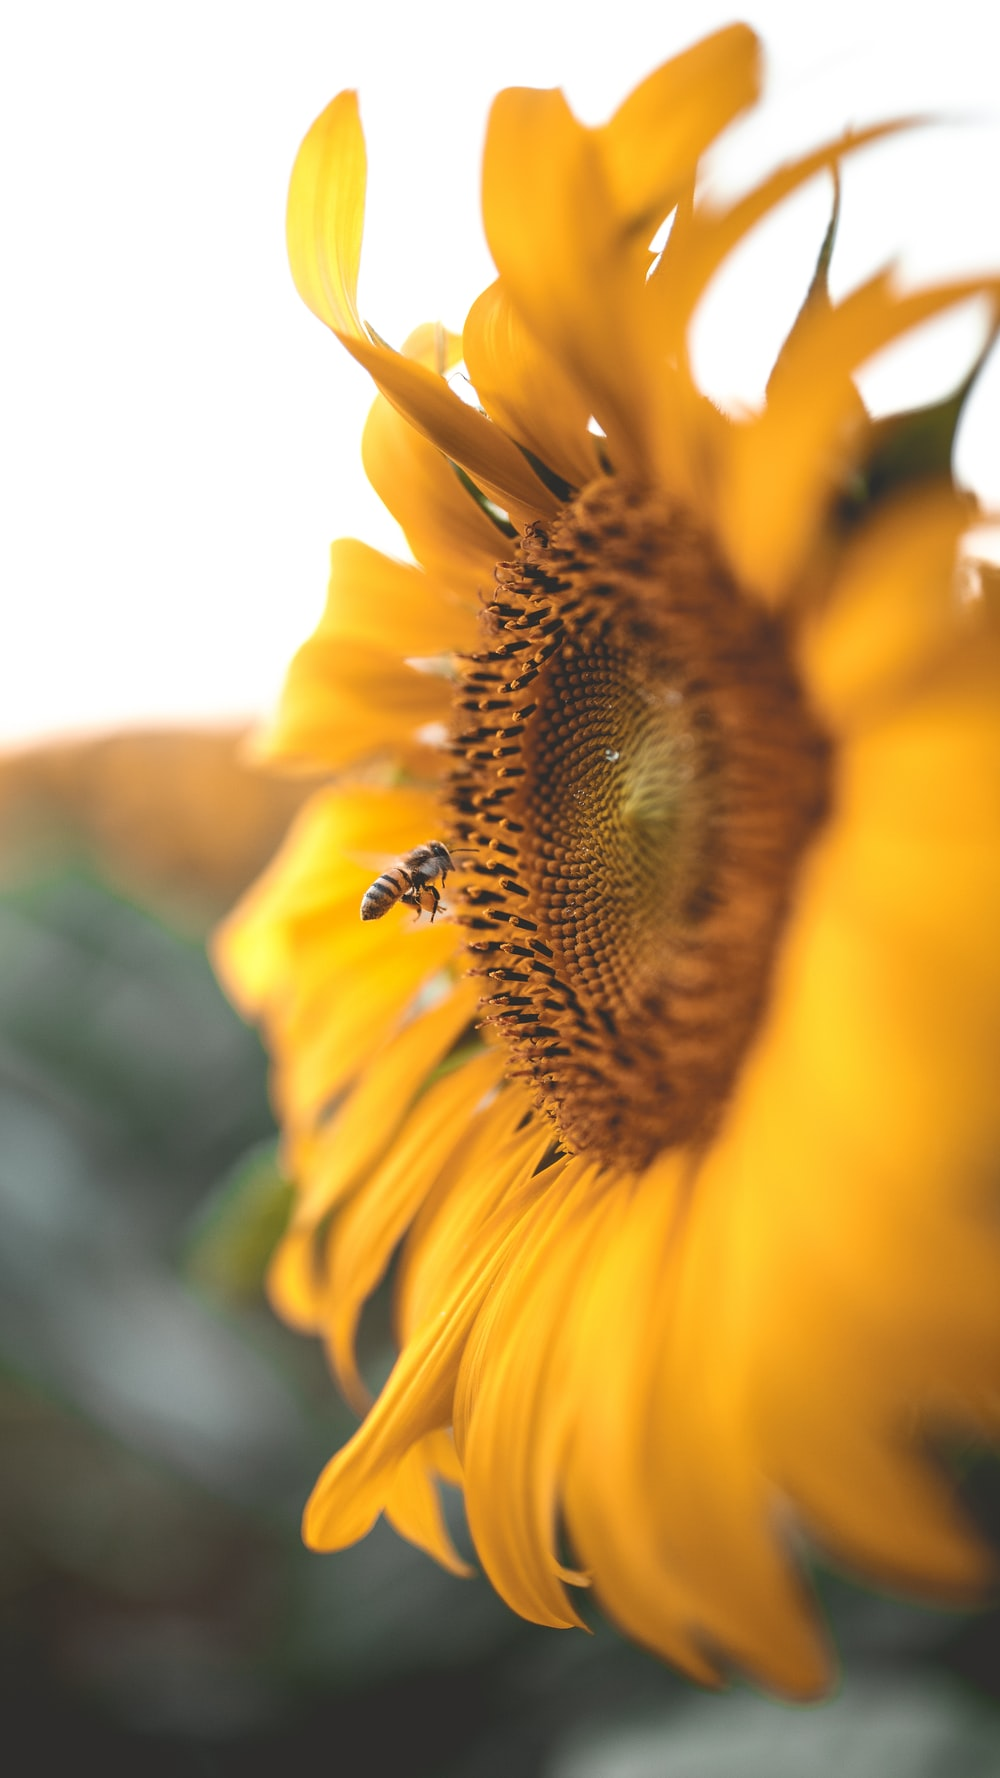 micro photography of bee on sunflower